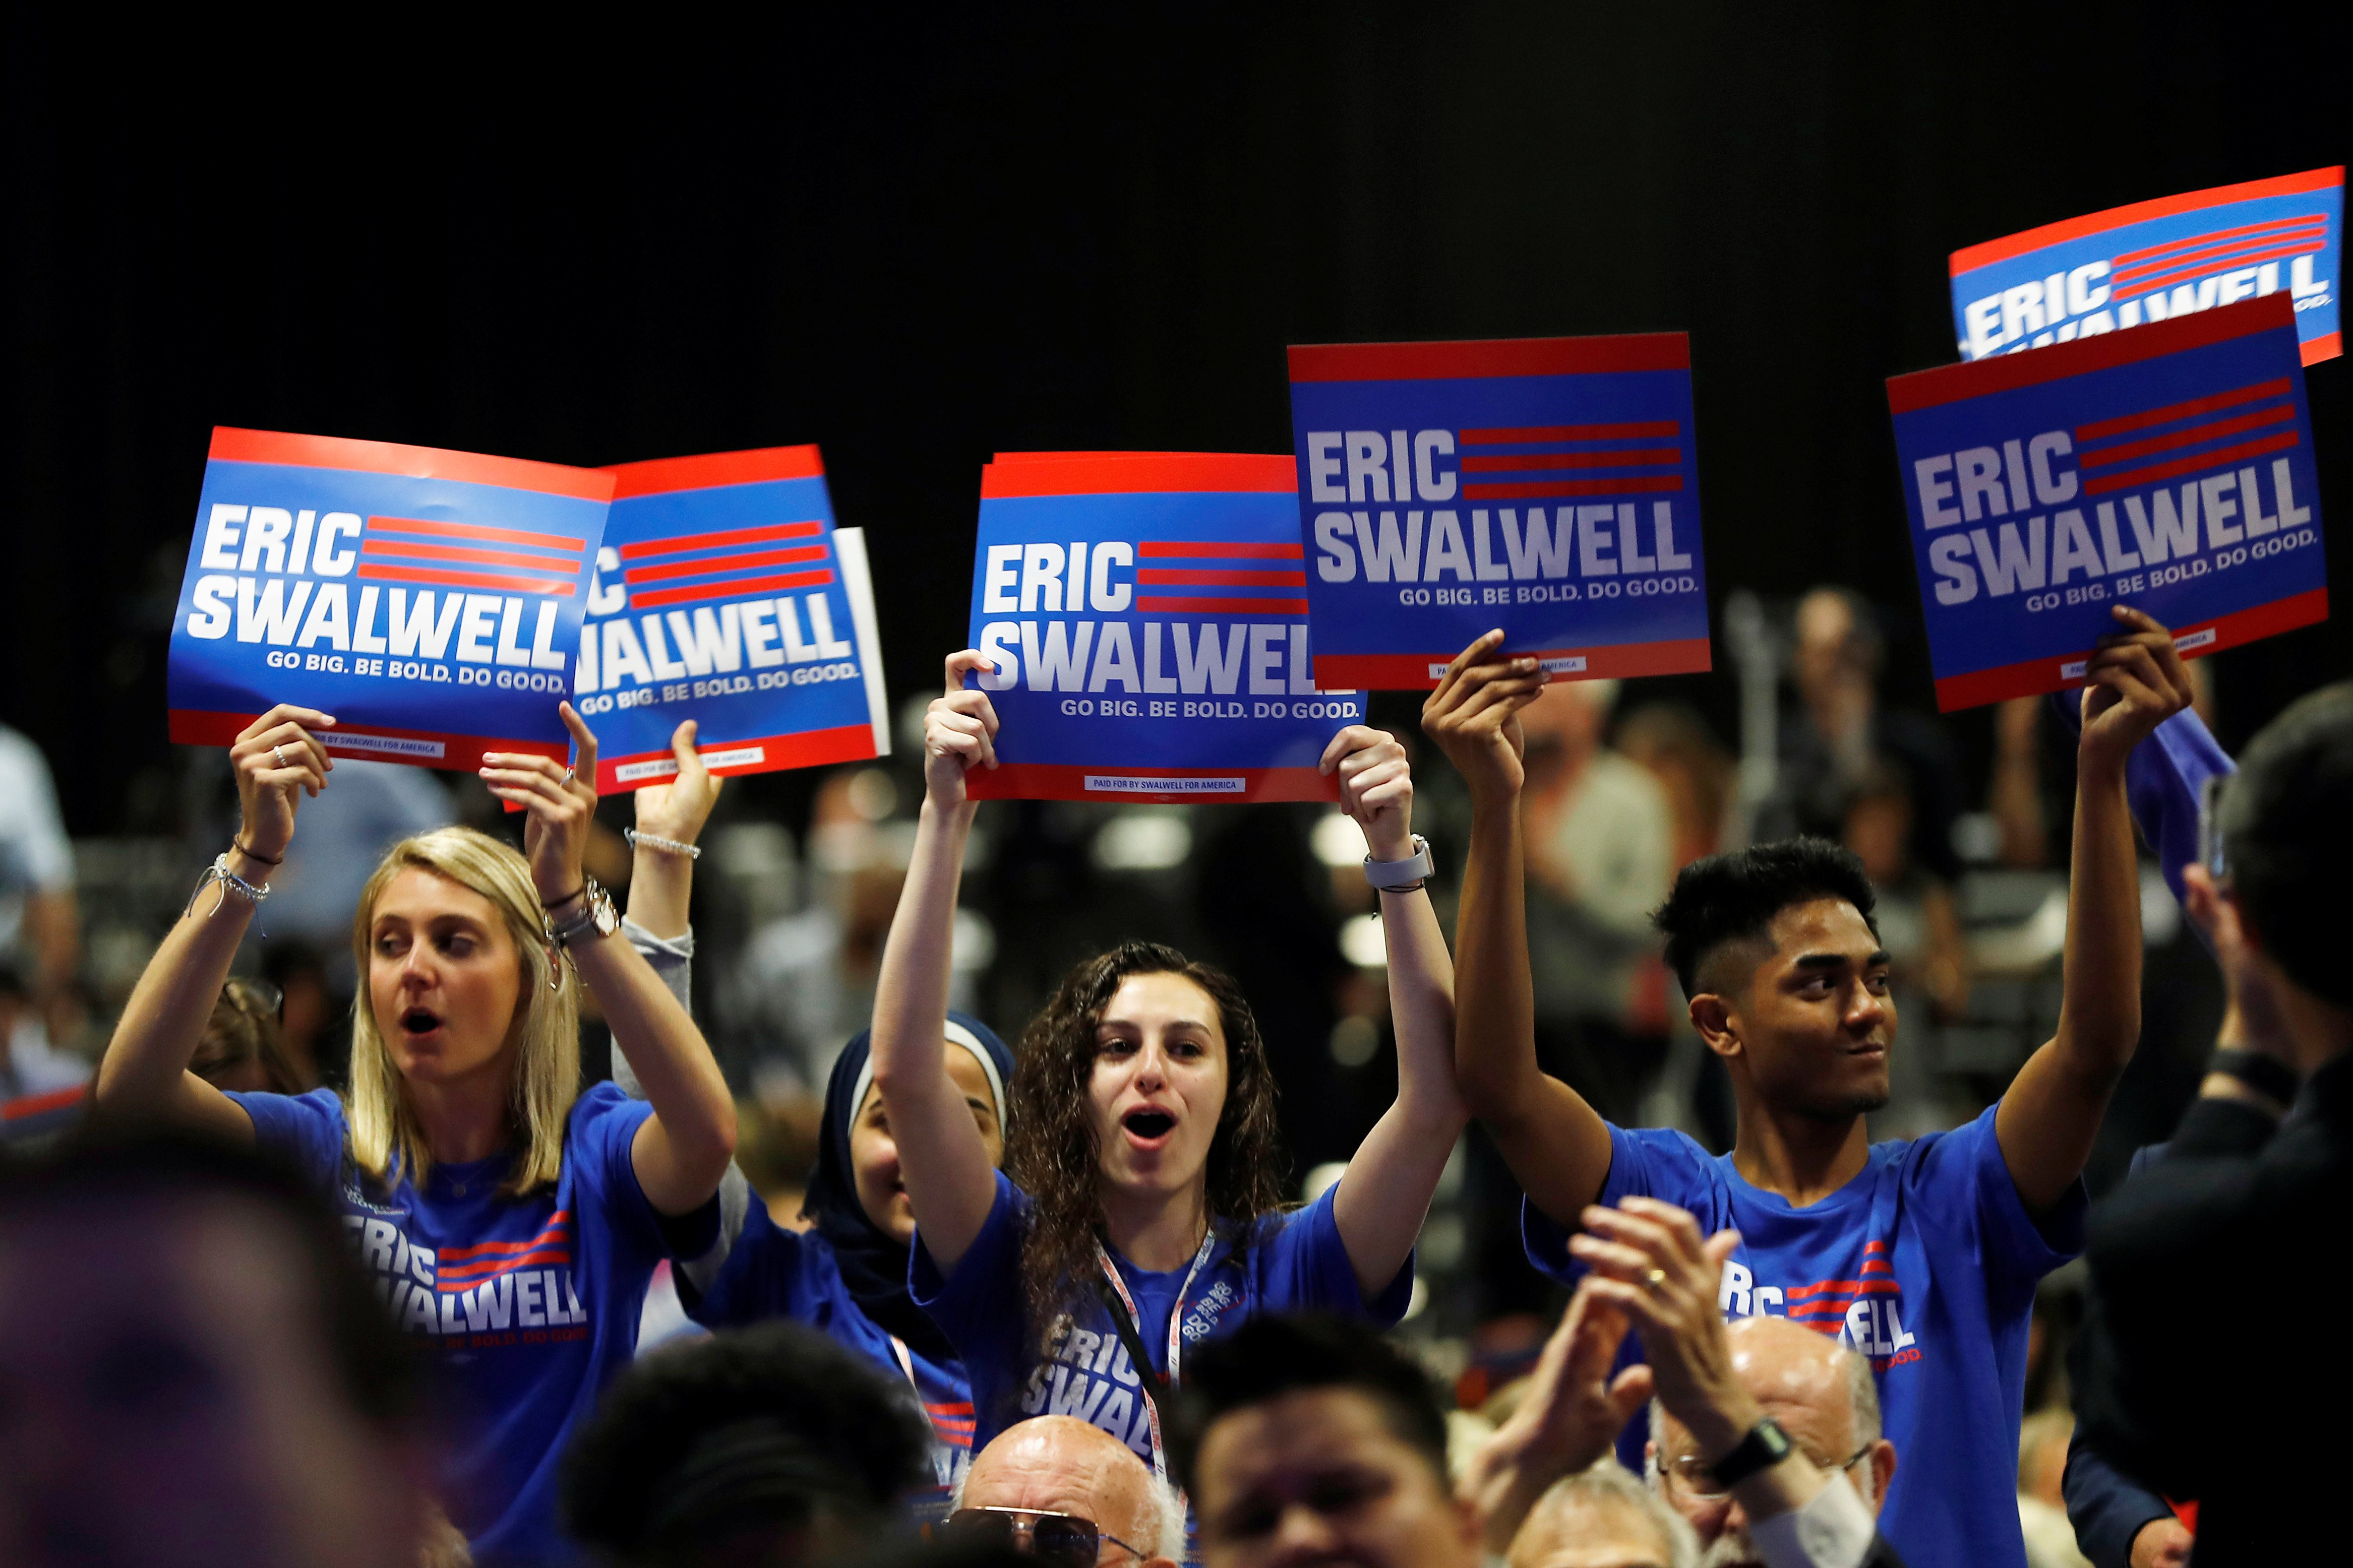 Supporters of Democratic U.S. presidential candidate U.S. Representative Eric Swalwell (D-CA) chant during the California Democratic Convention in San Francisco, California, U.S. June 1, 2019. REUTERS/Stephen Lam